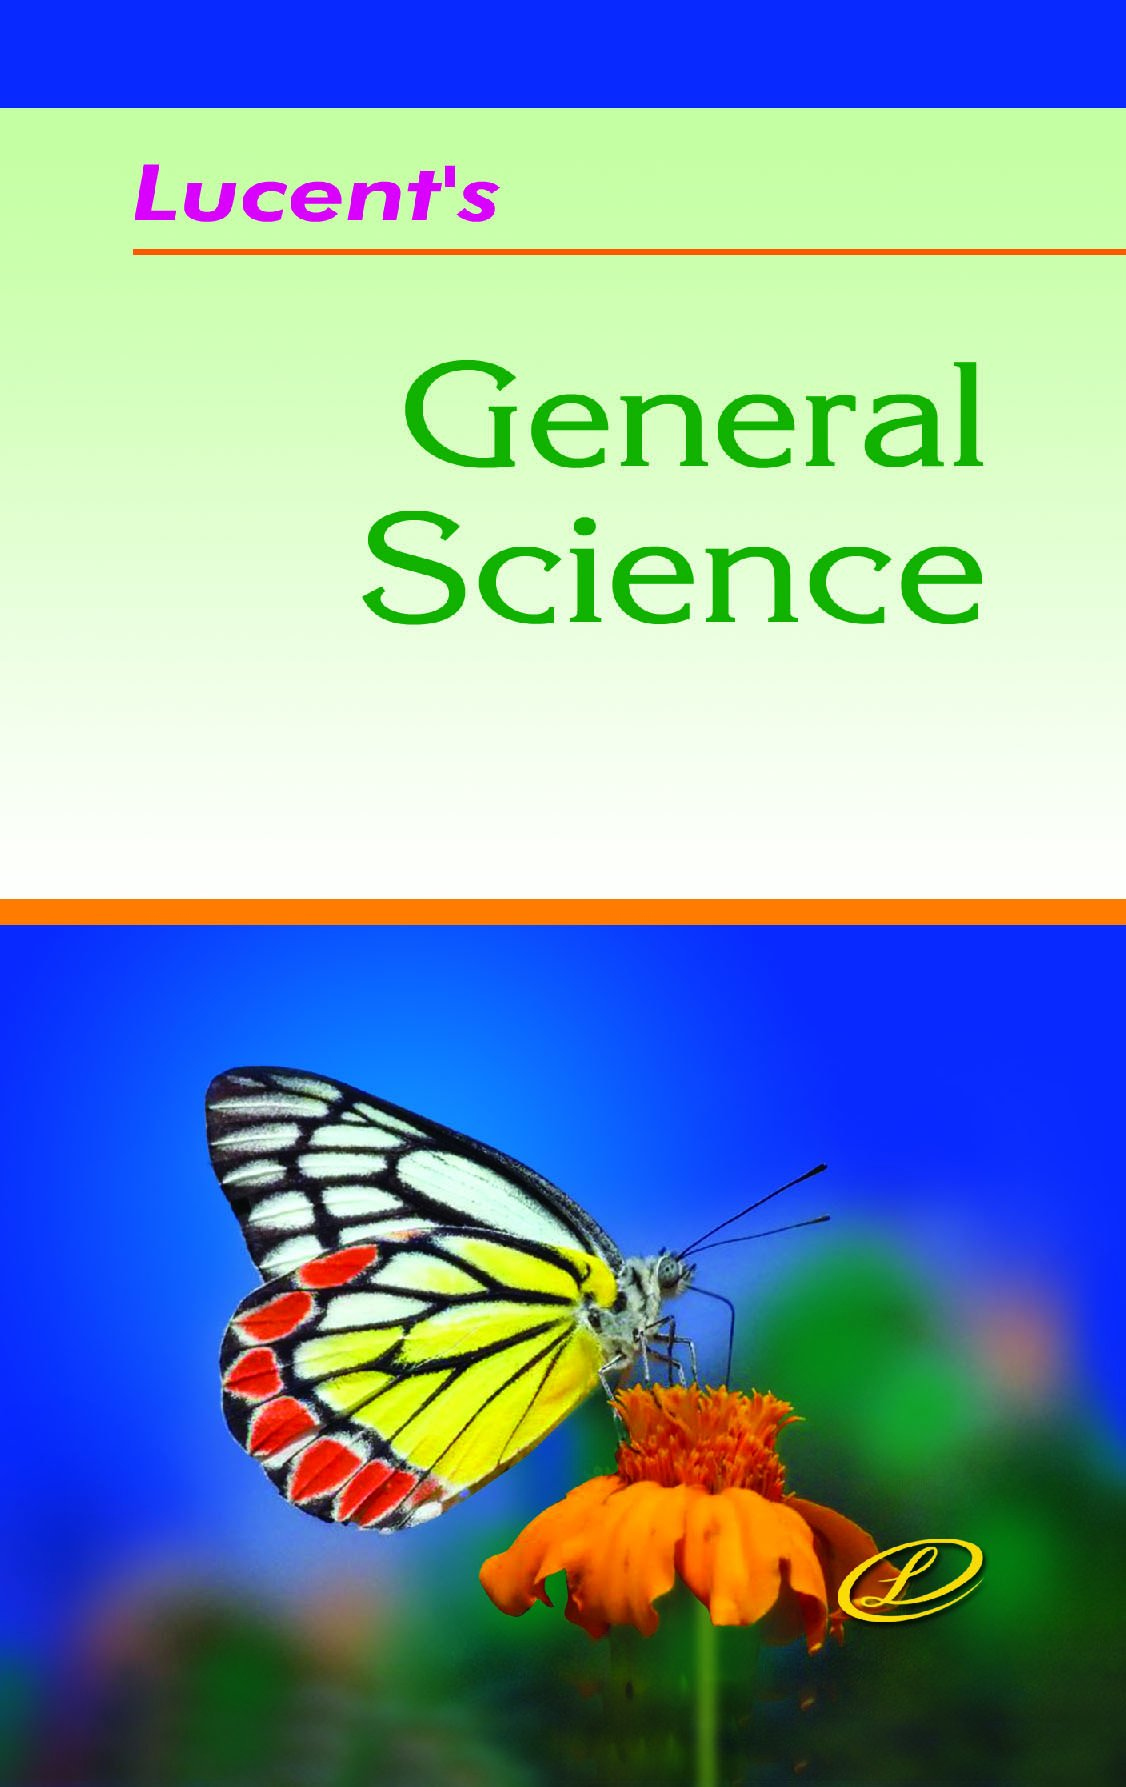 PDF] Lucent's General Science [English & Hindi] By Ravi